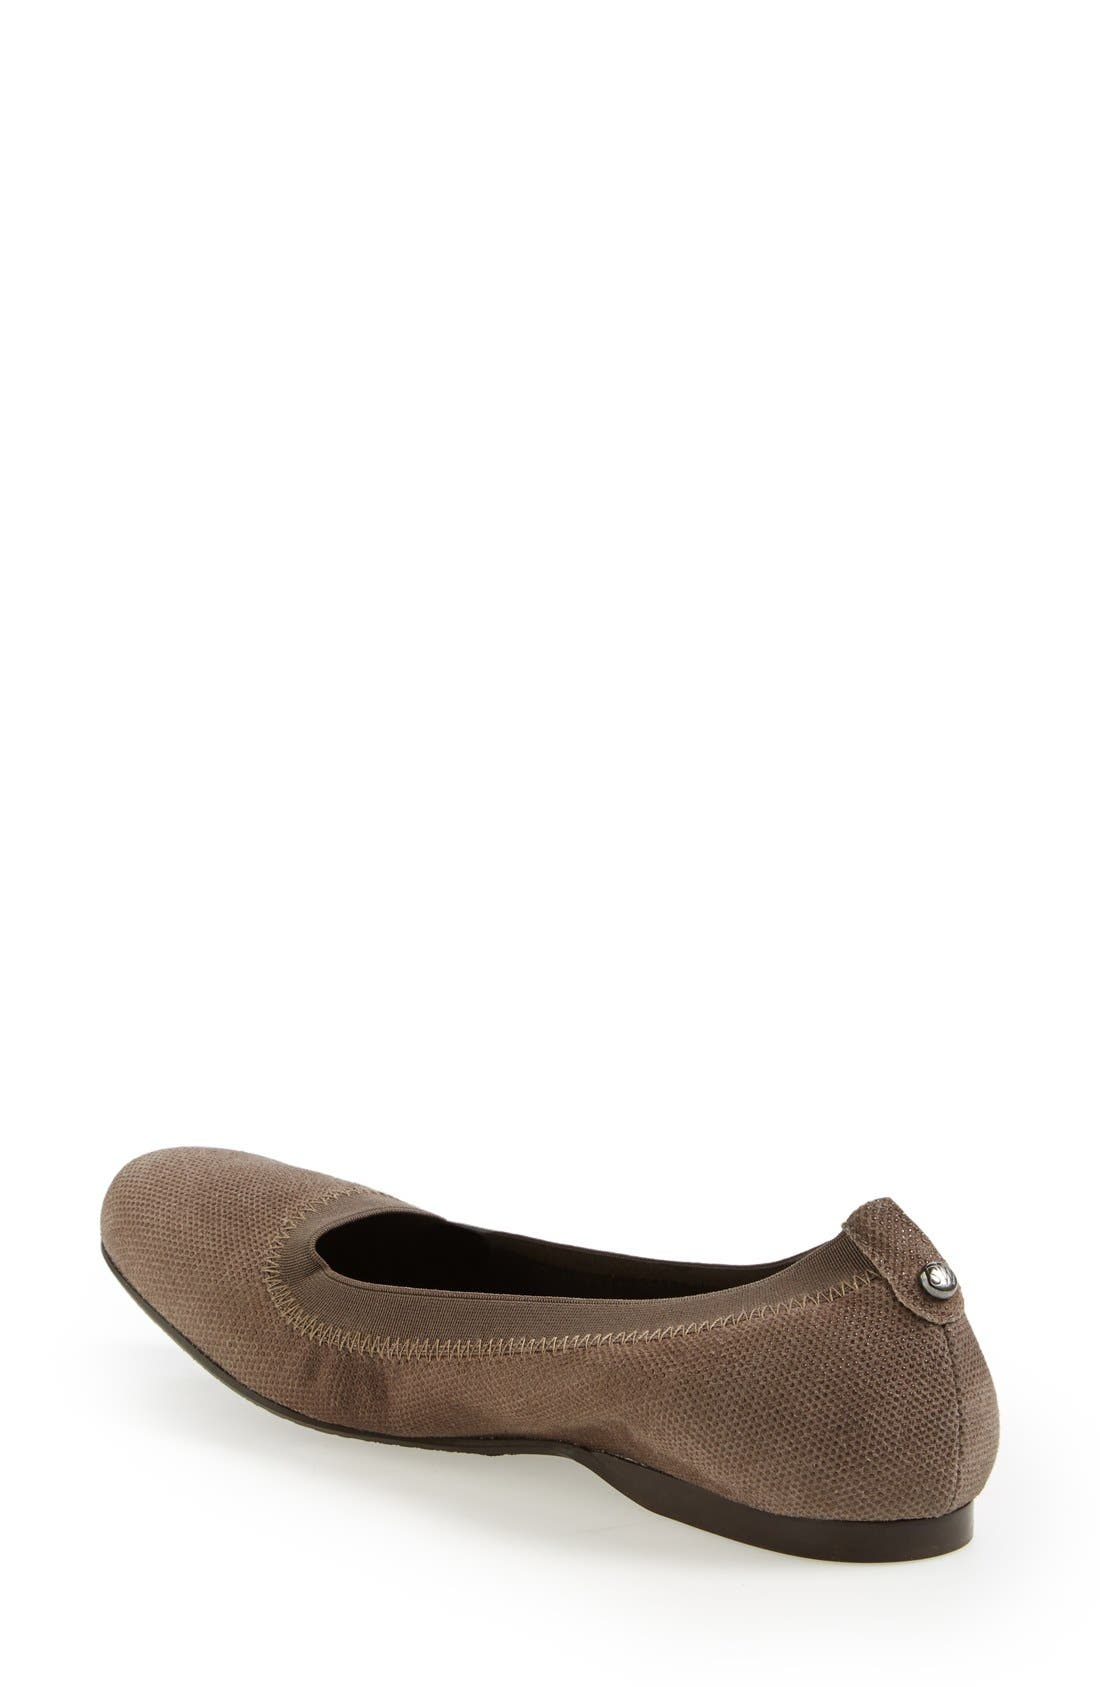 Alternate Image 2  - Stuart Weitzman 'Slipin' Flat (Nordstrom Exclusive) (Women)